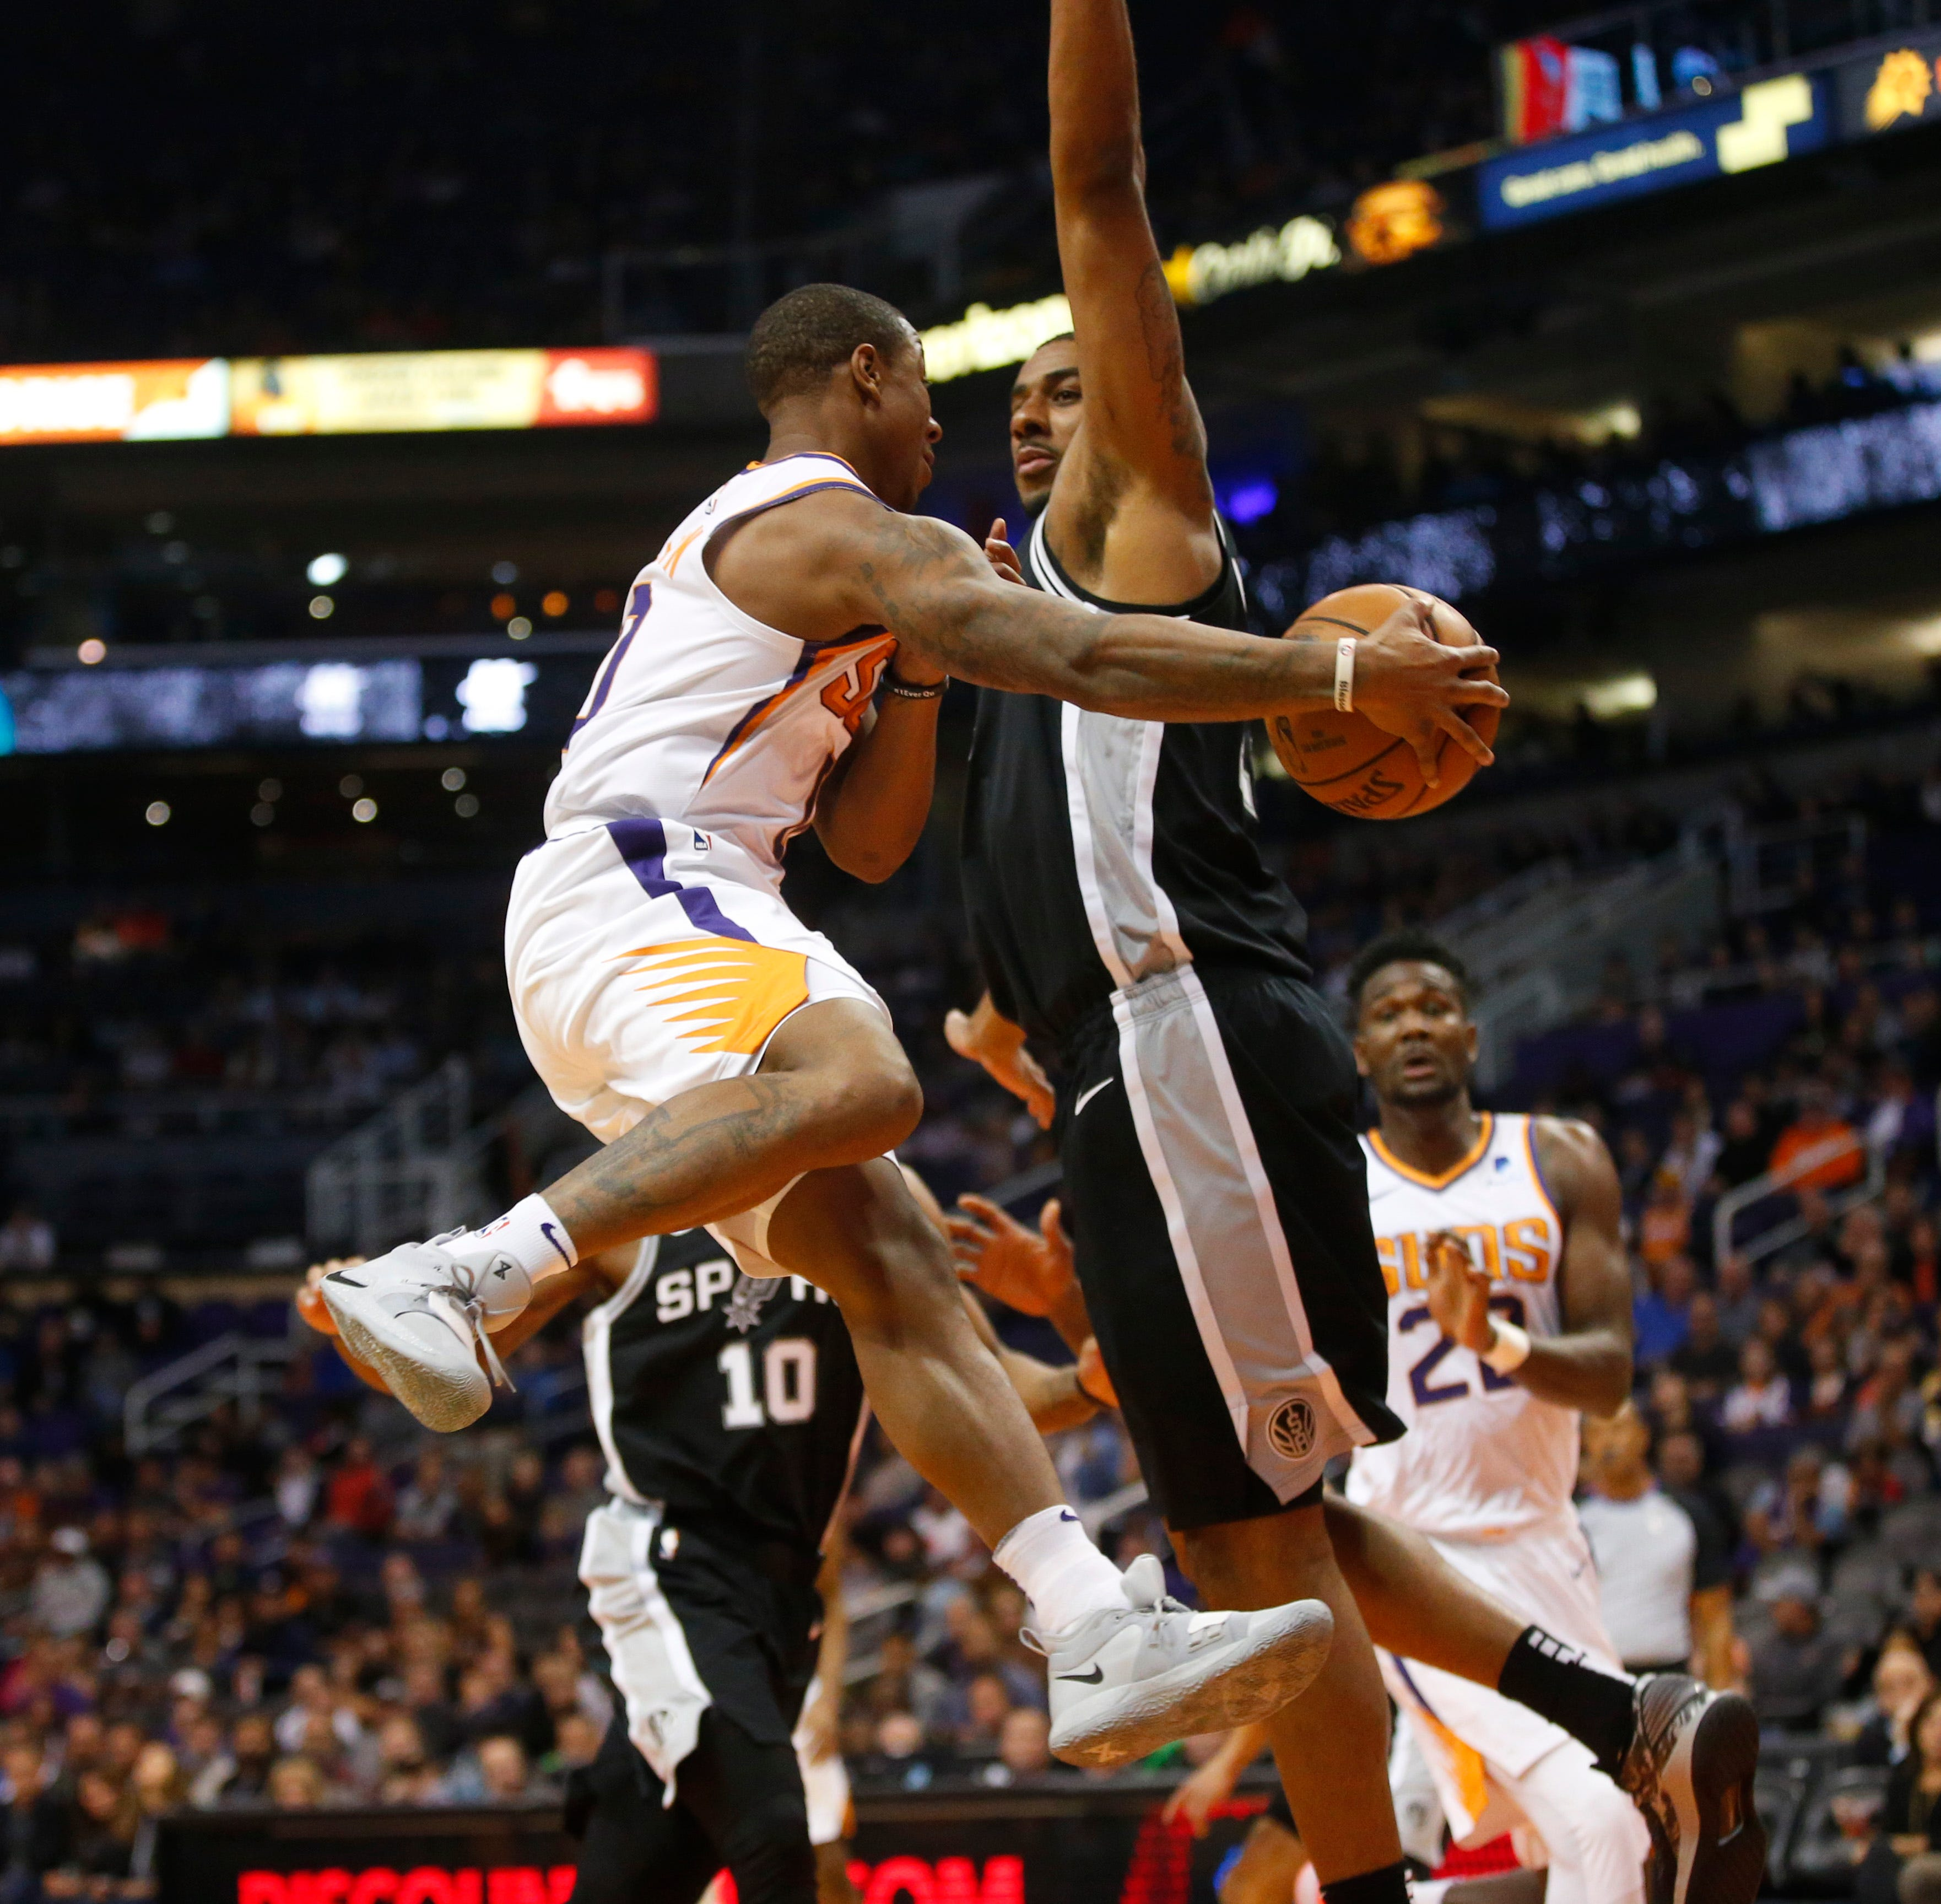 '50-point swing': Phoenix Suns avenge 30-point loss to San Antonio Spurs in 116-96 romp